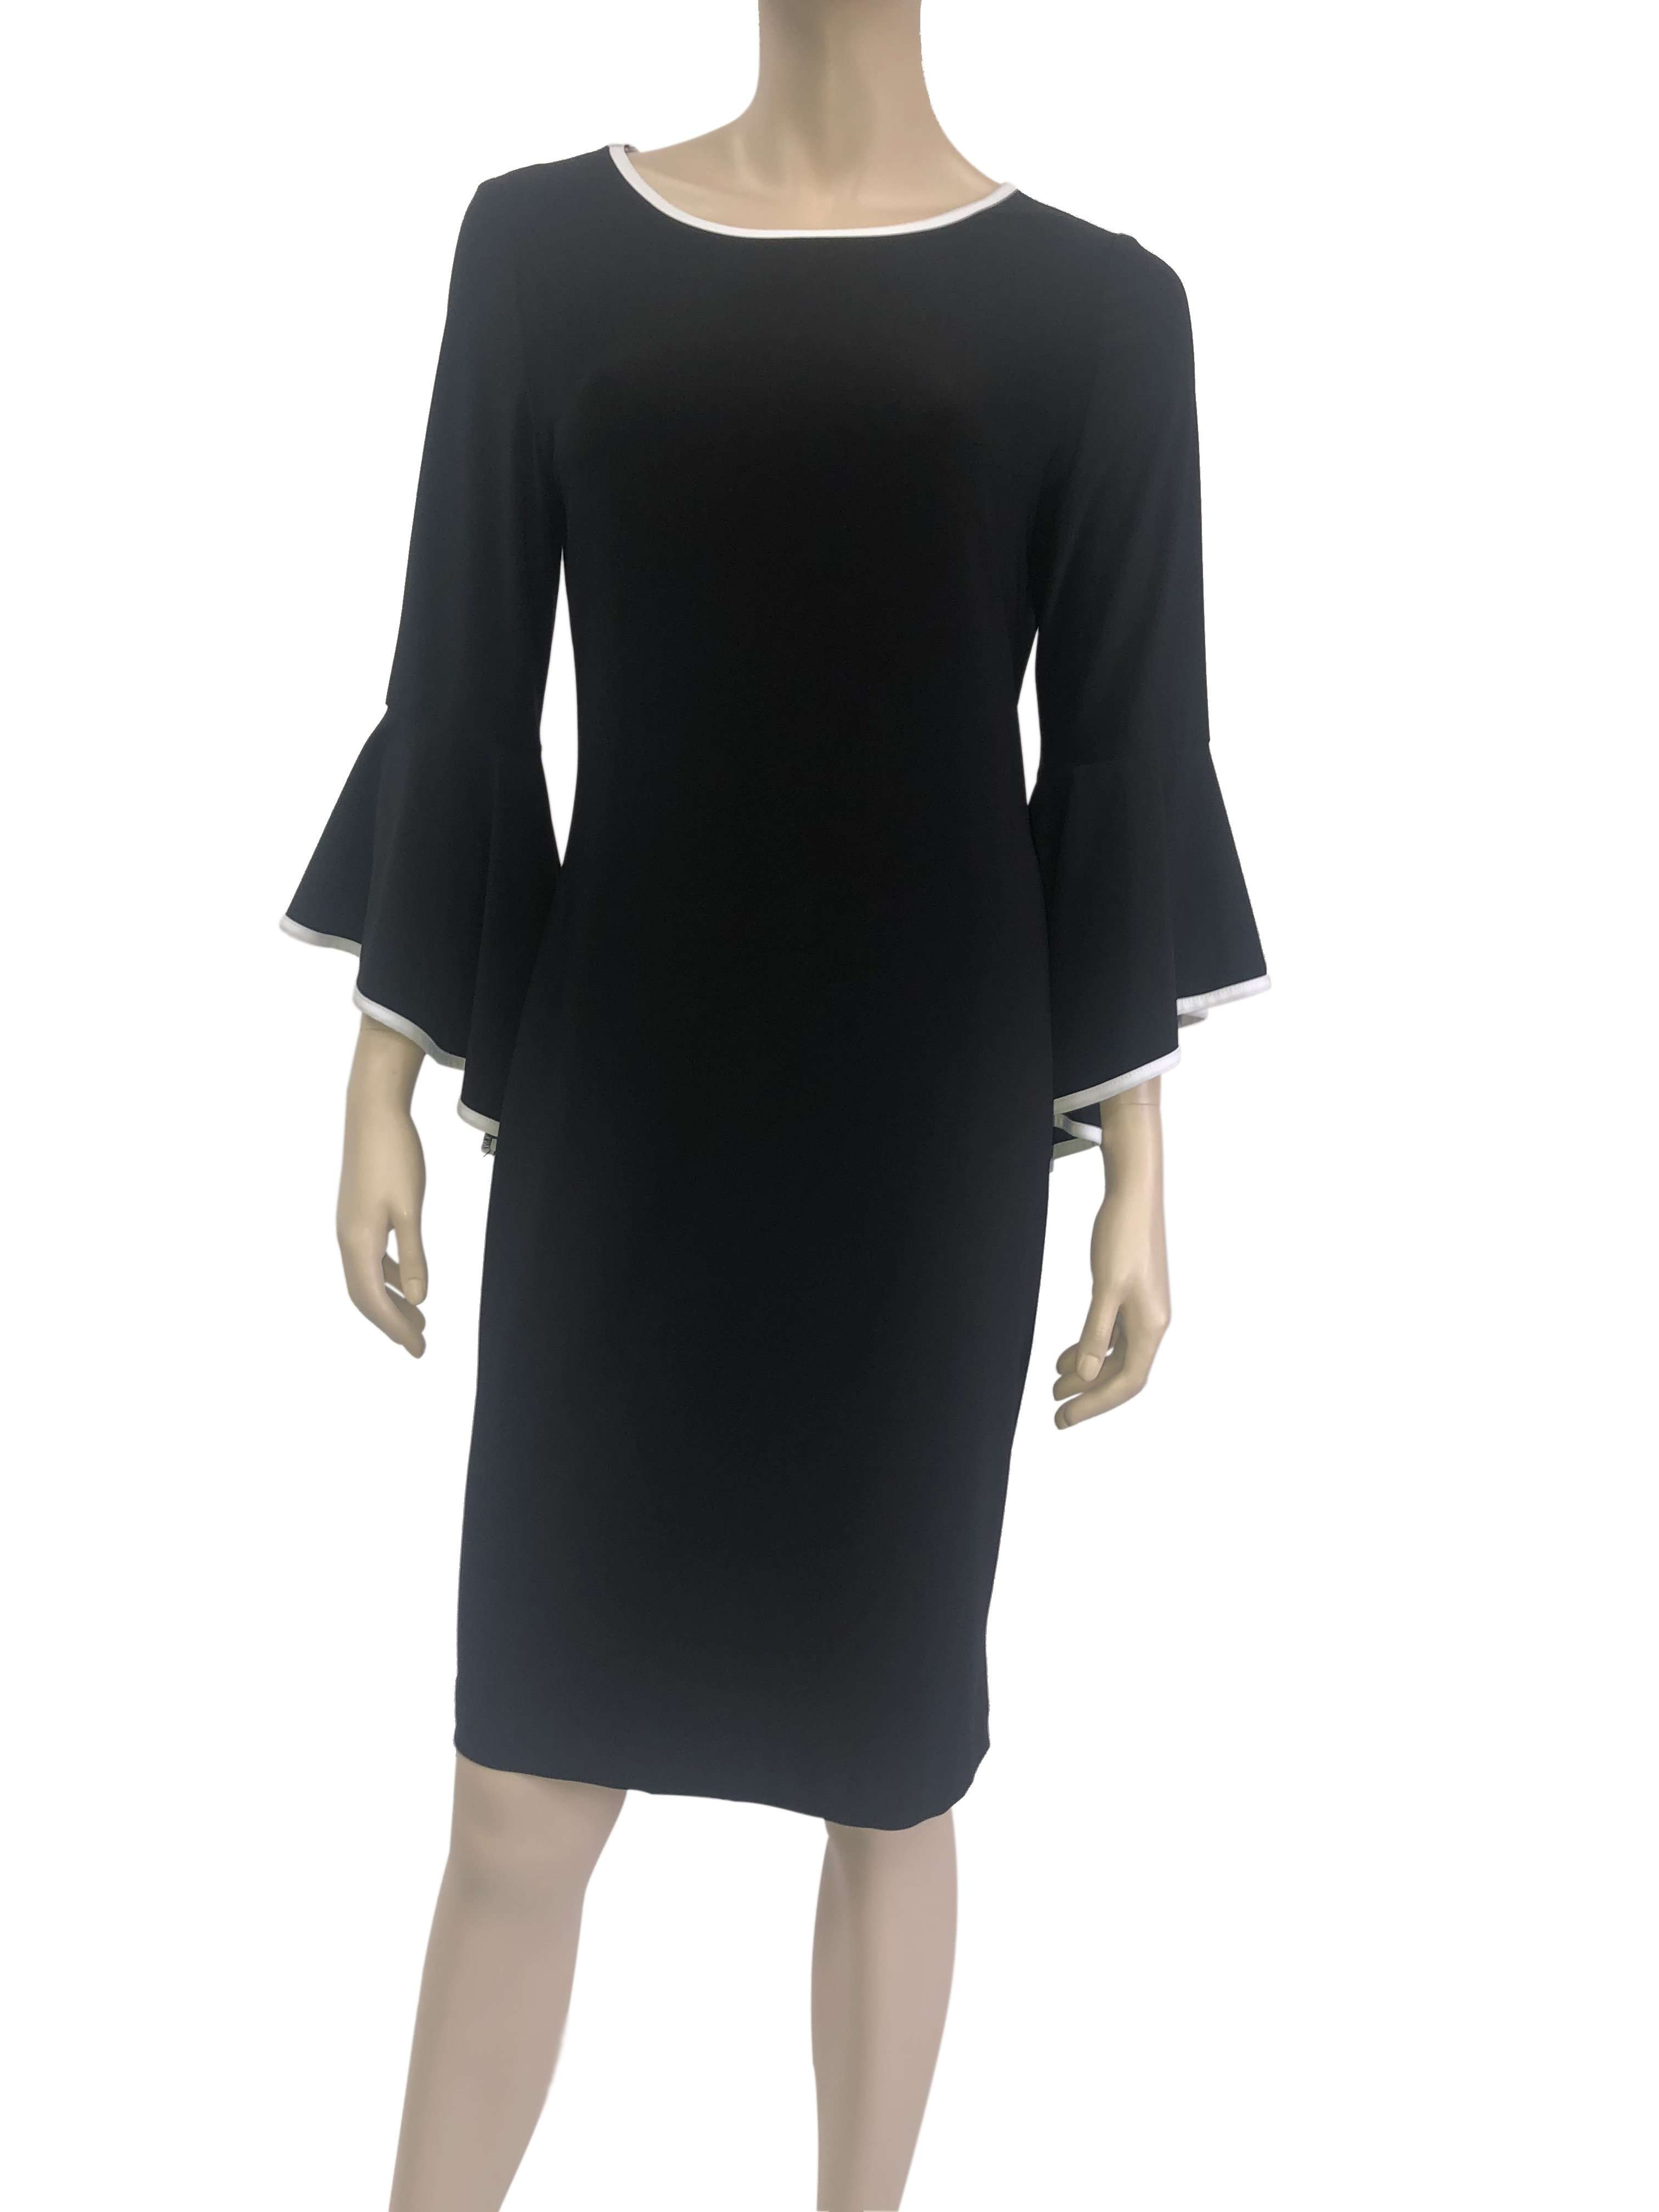 Women's Dresses on Sale Black Classic Dress with Bell Sleeve - Made in Canada - Yvonne Marie - Yvonne Marie